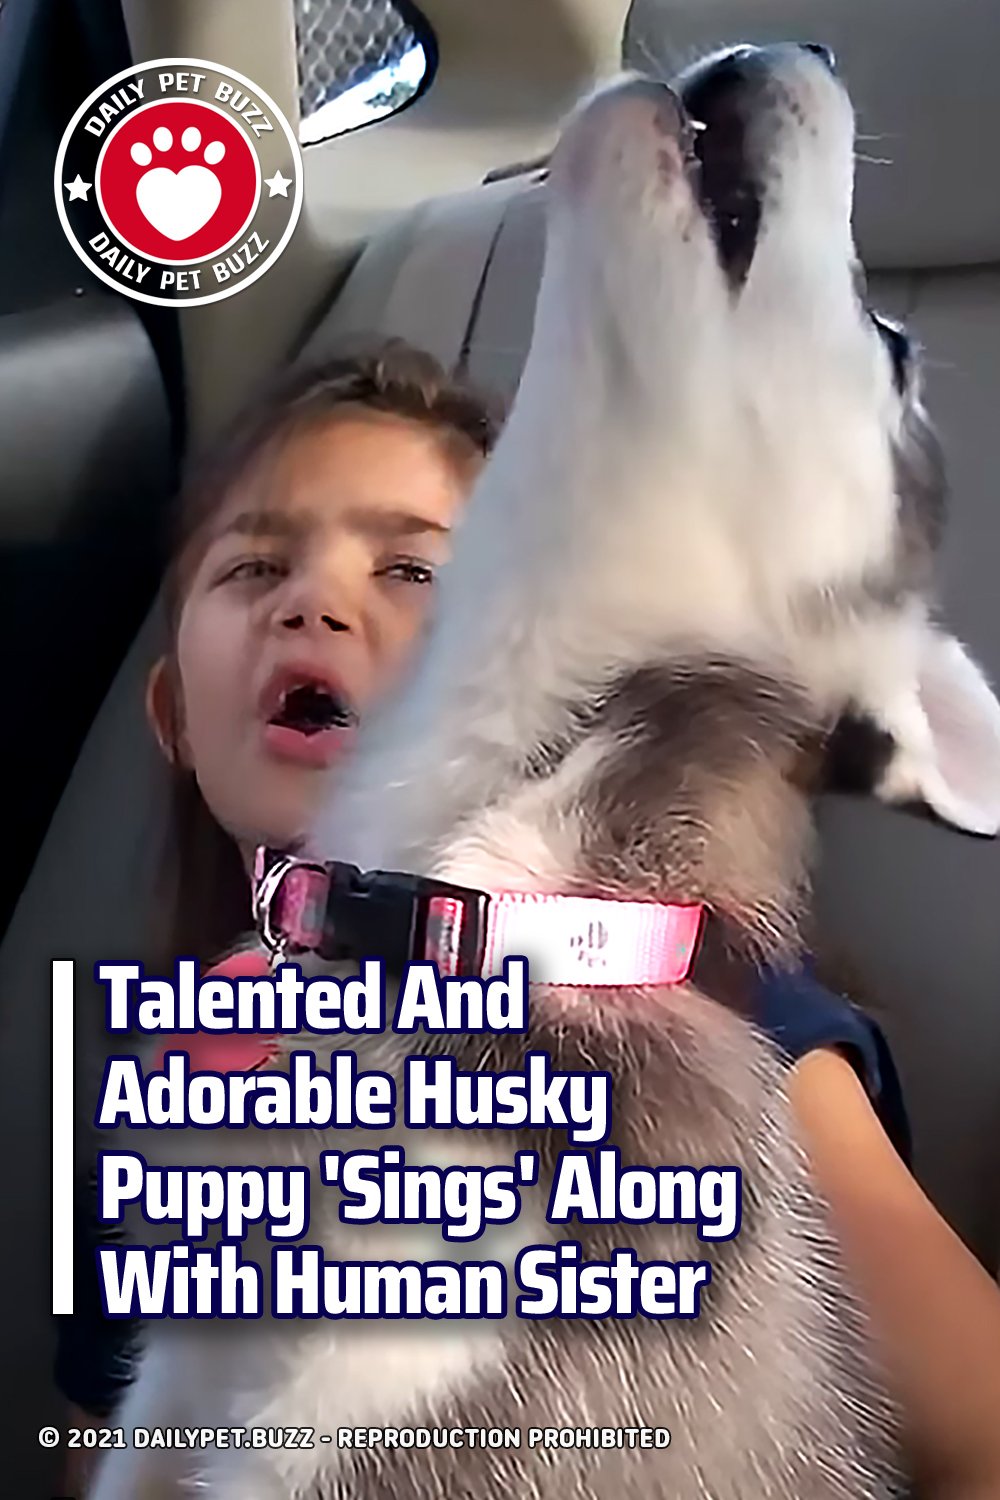 Talented And Adorable Husky Puppy \'Sings\' Along With Human Sister